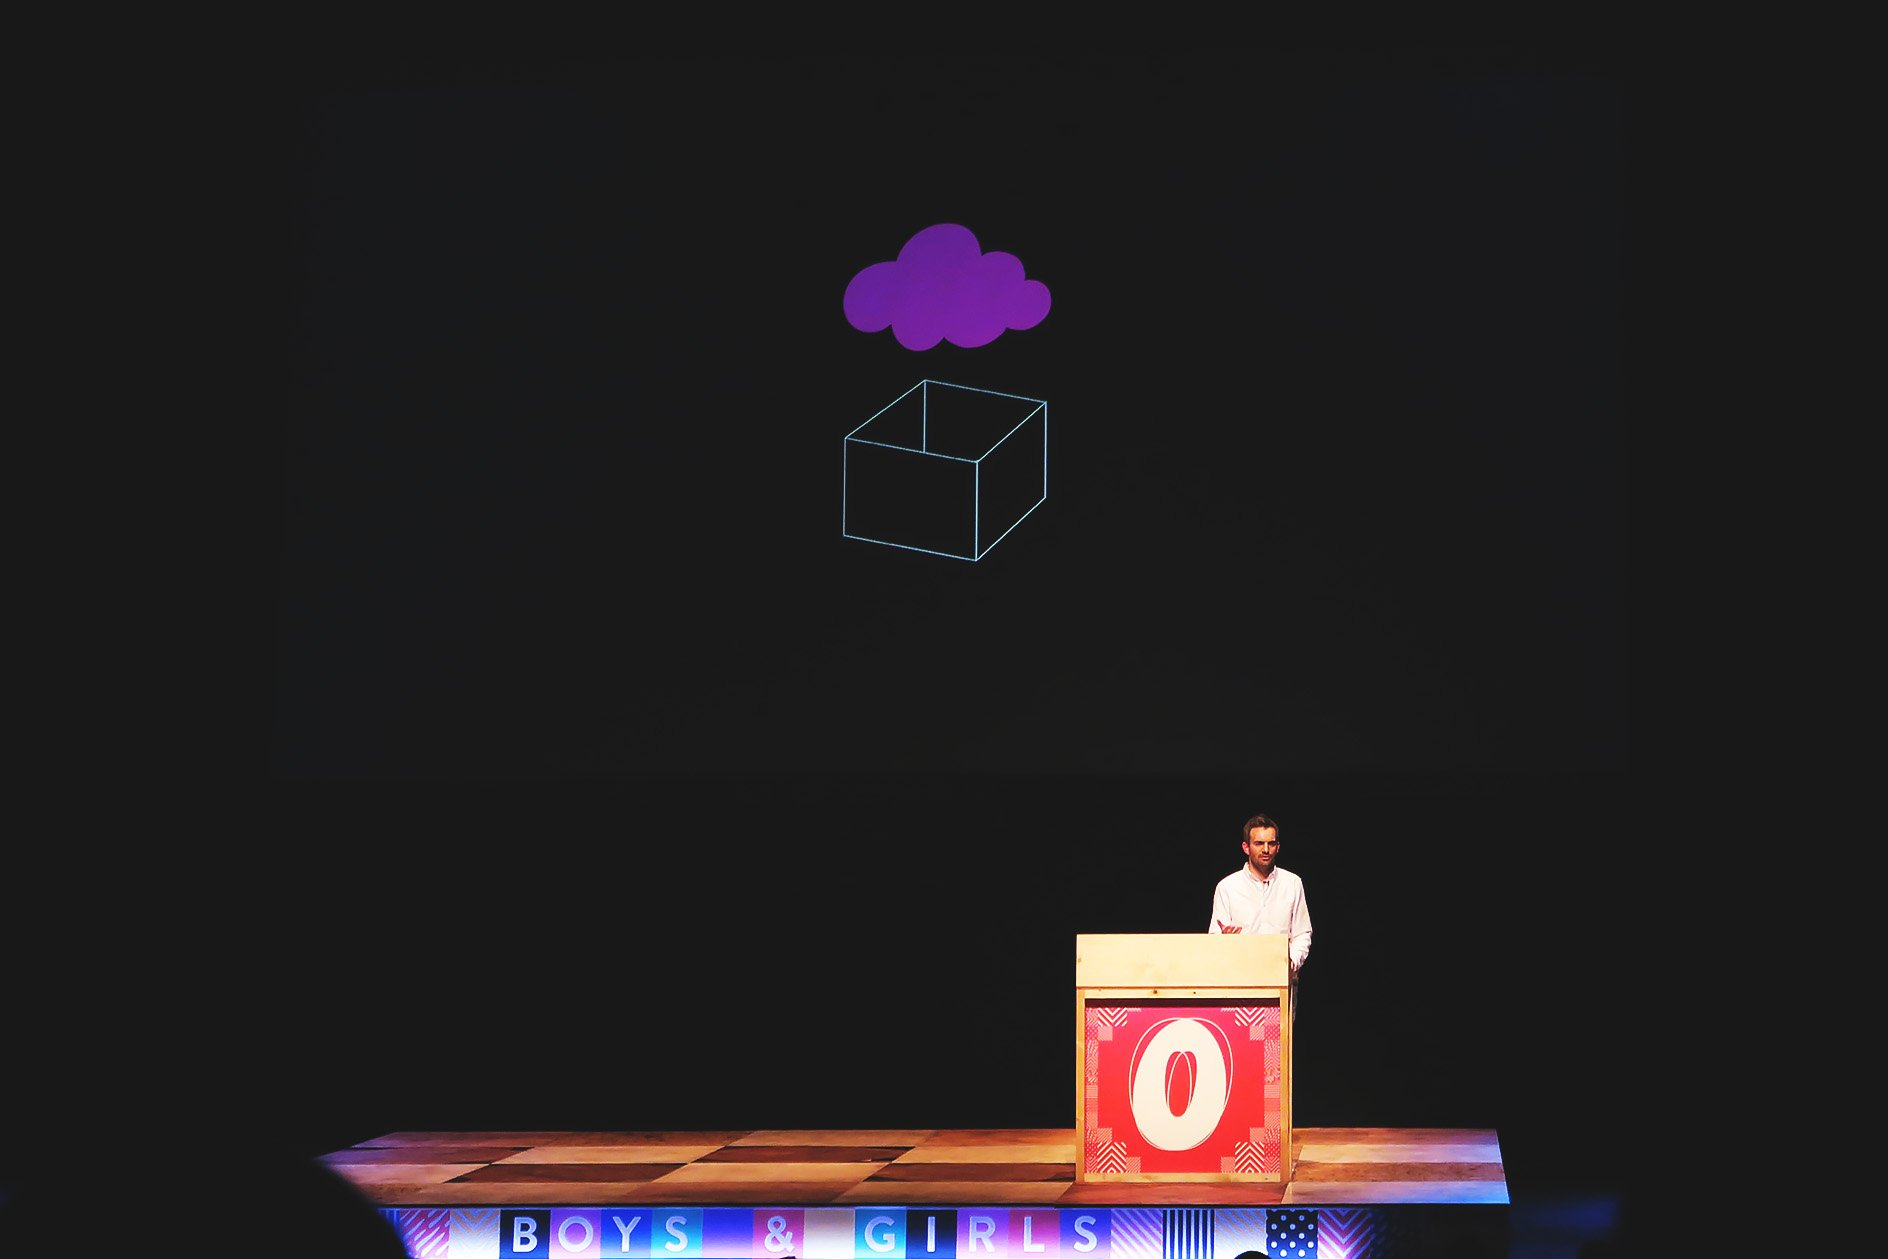 Boys and Girls at OFFSET 2015 –Box and Cloud Icon